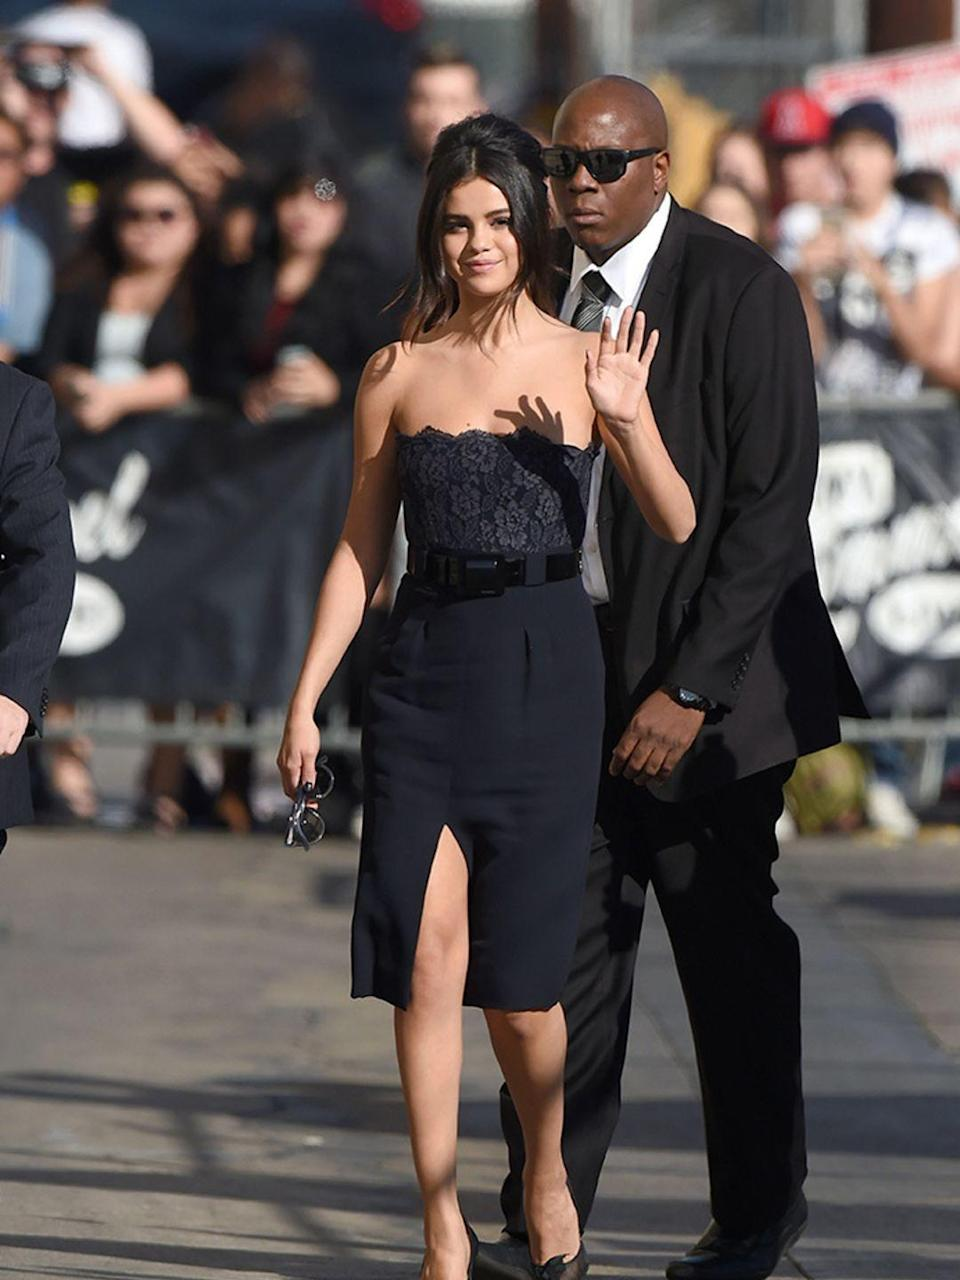 <p>Selena Gomez attends Jimmy Kimmel Live in Los Angeles, October 2014. </p>